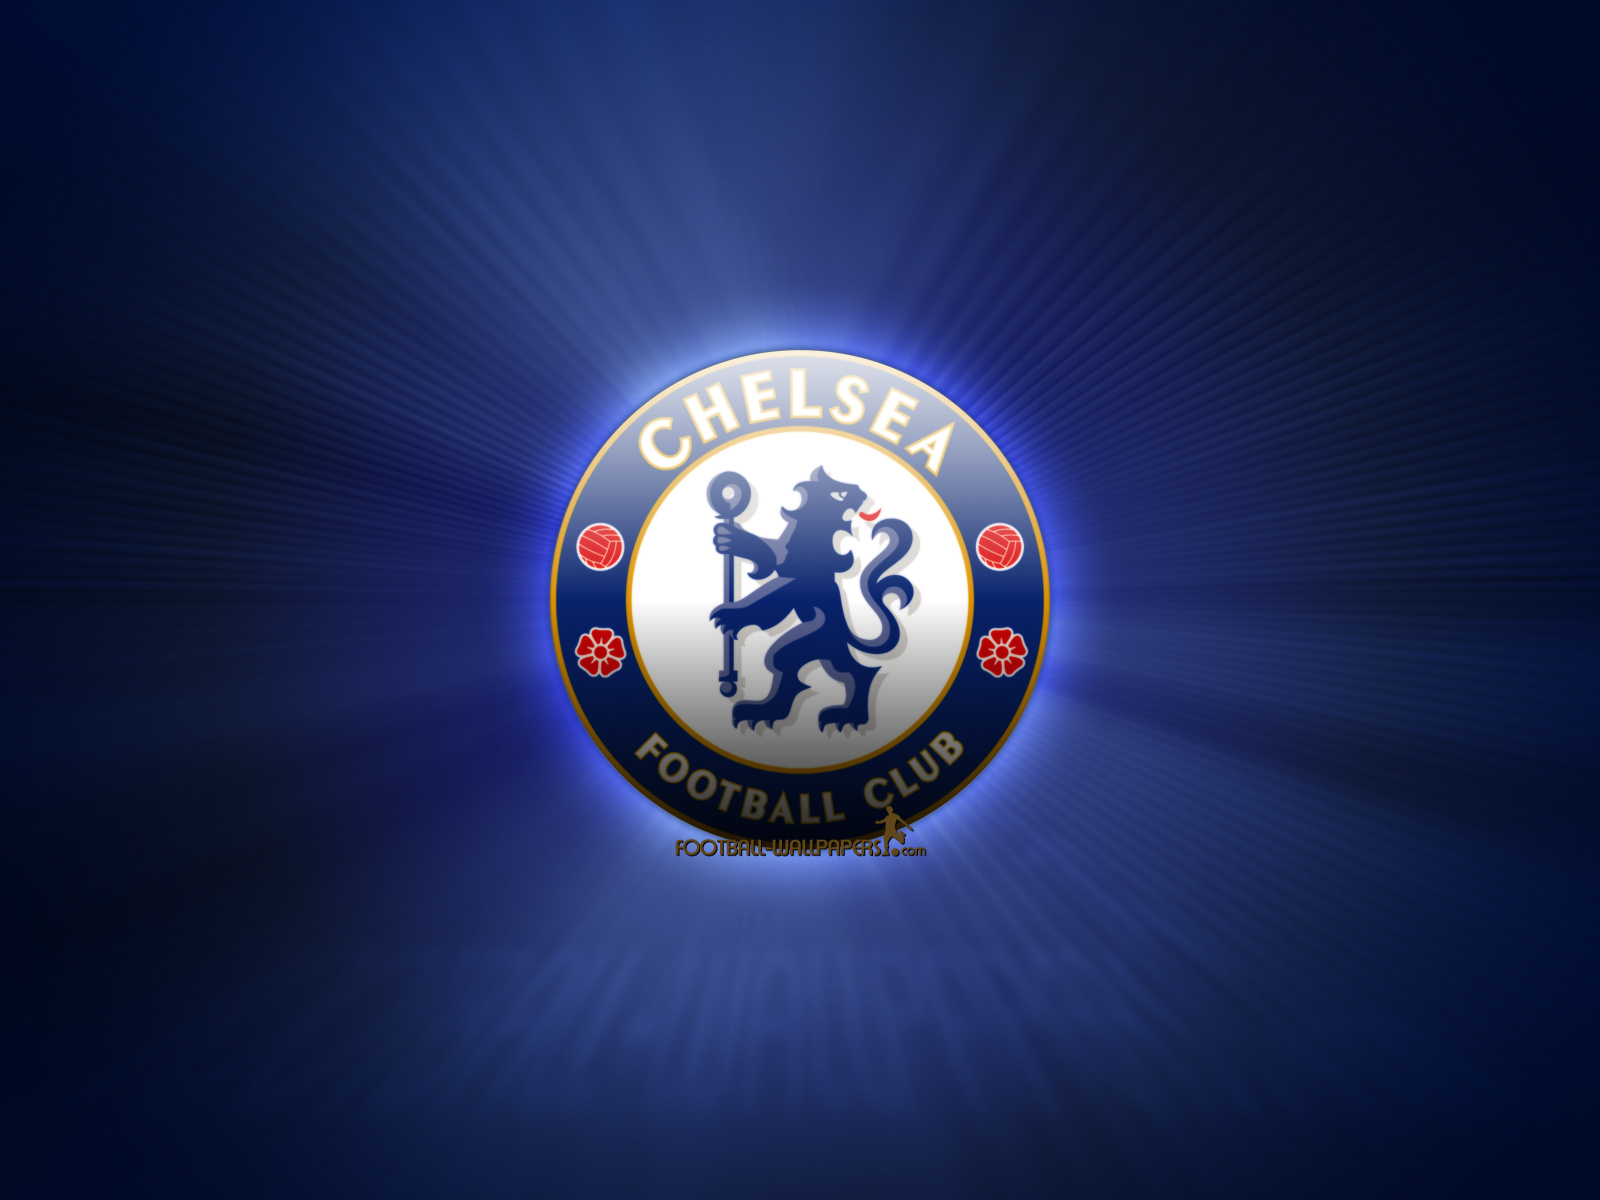 World Sports Hd Wallpapers Chelsea Fc Hd Wallpapers 1600x1200